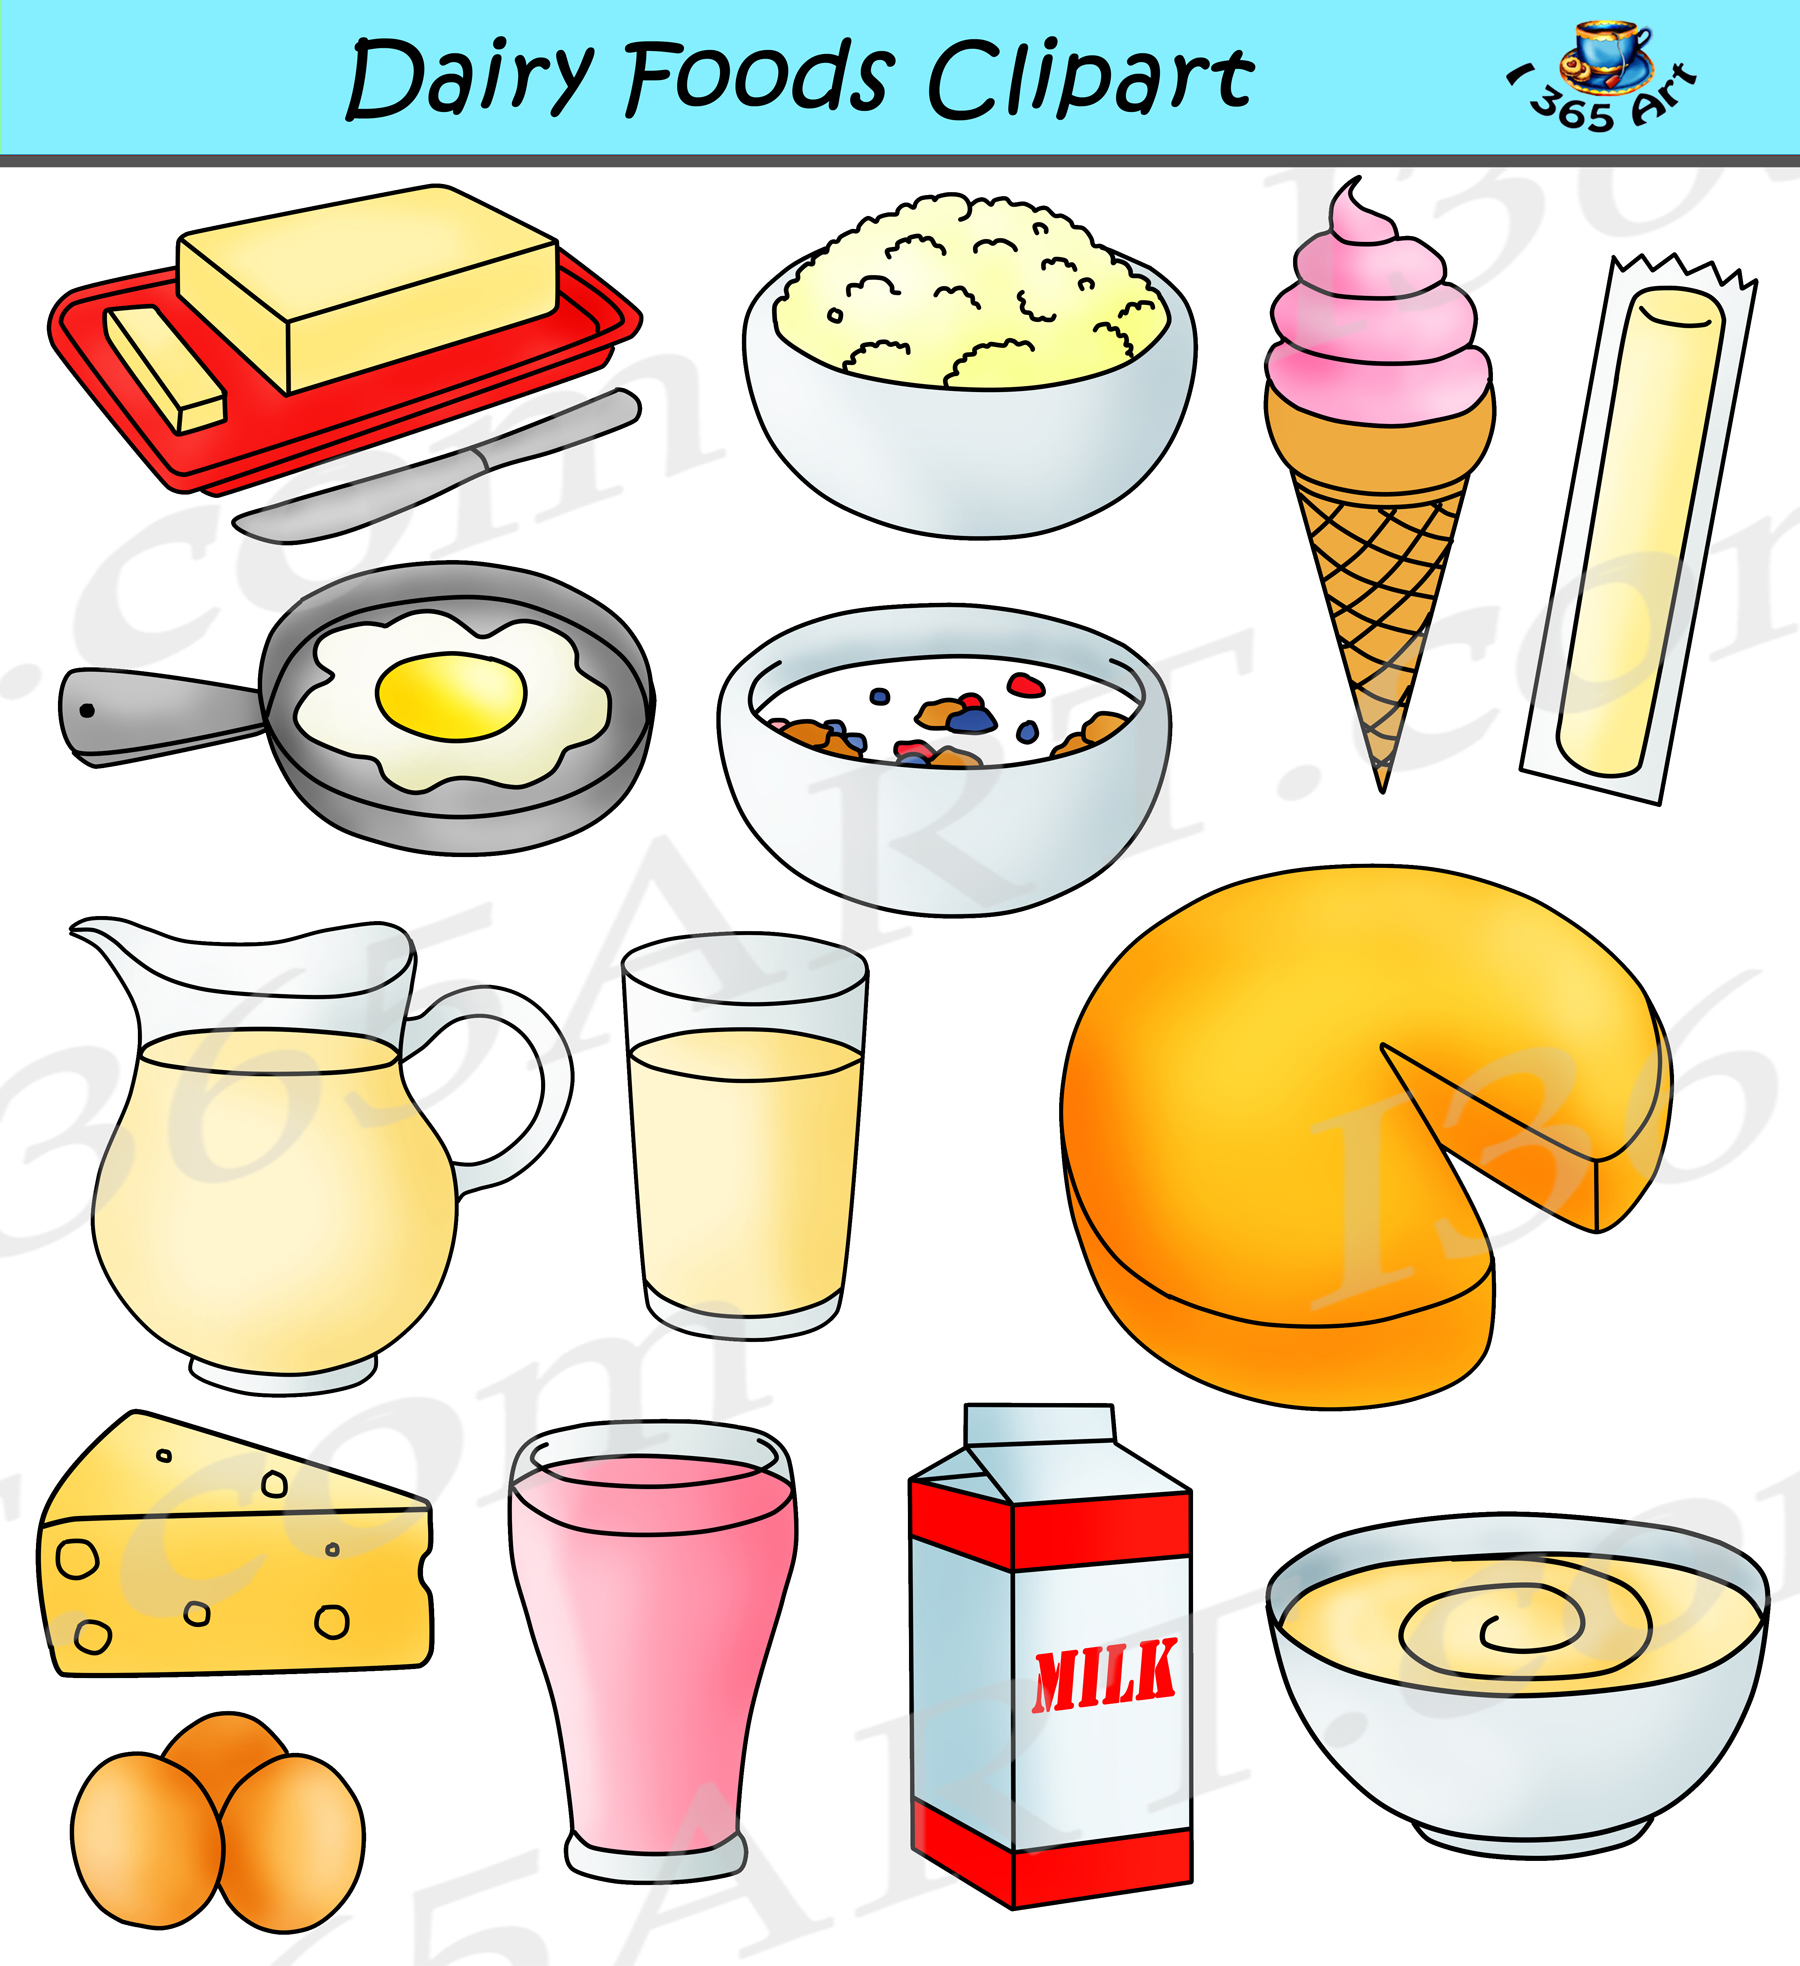 dairy clipart milk foods graphics food things clip healthy queso teachers preschool transparent